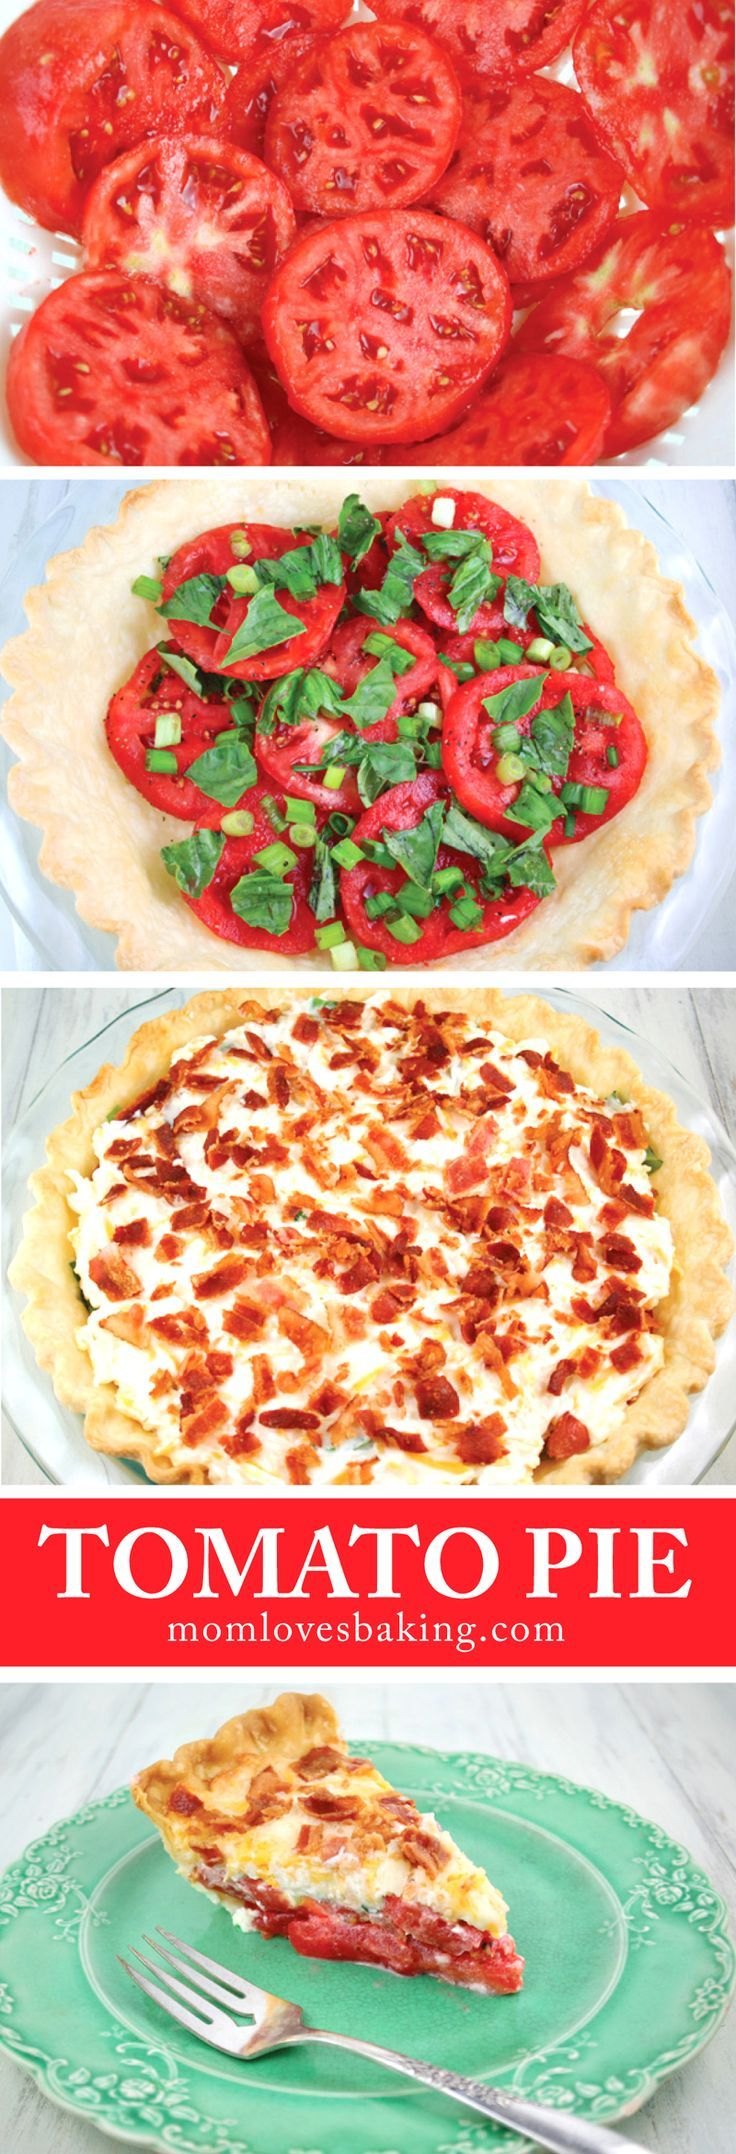 The simple ingredients make it total comfort food. Fresh tomatoes, green onions, and fresh basil create the first layer; topped with cheddar cheese, mozzarella cheese, mayonnaise and bacon. All in a basic pie crust and baked for 30 minutes. So good!